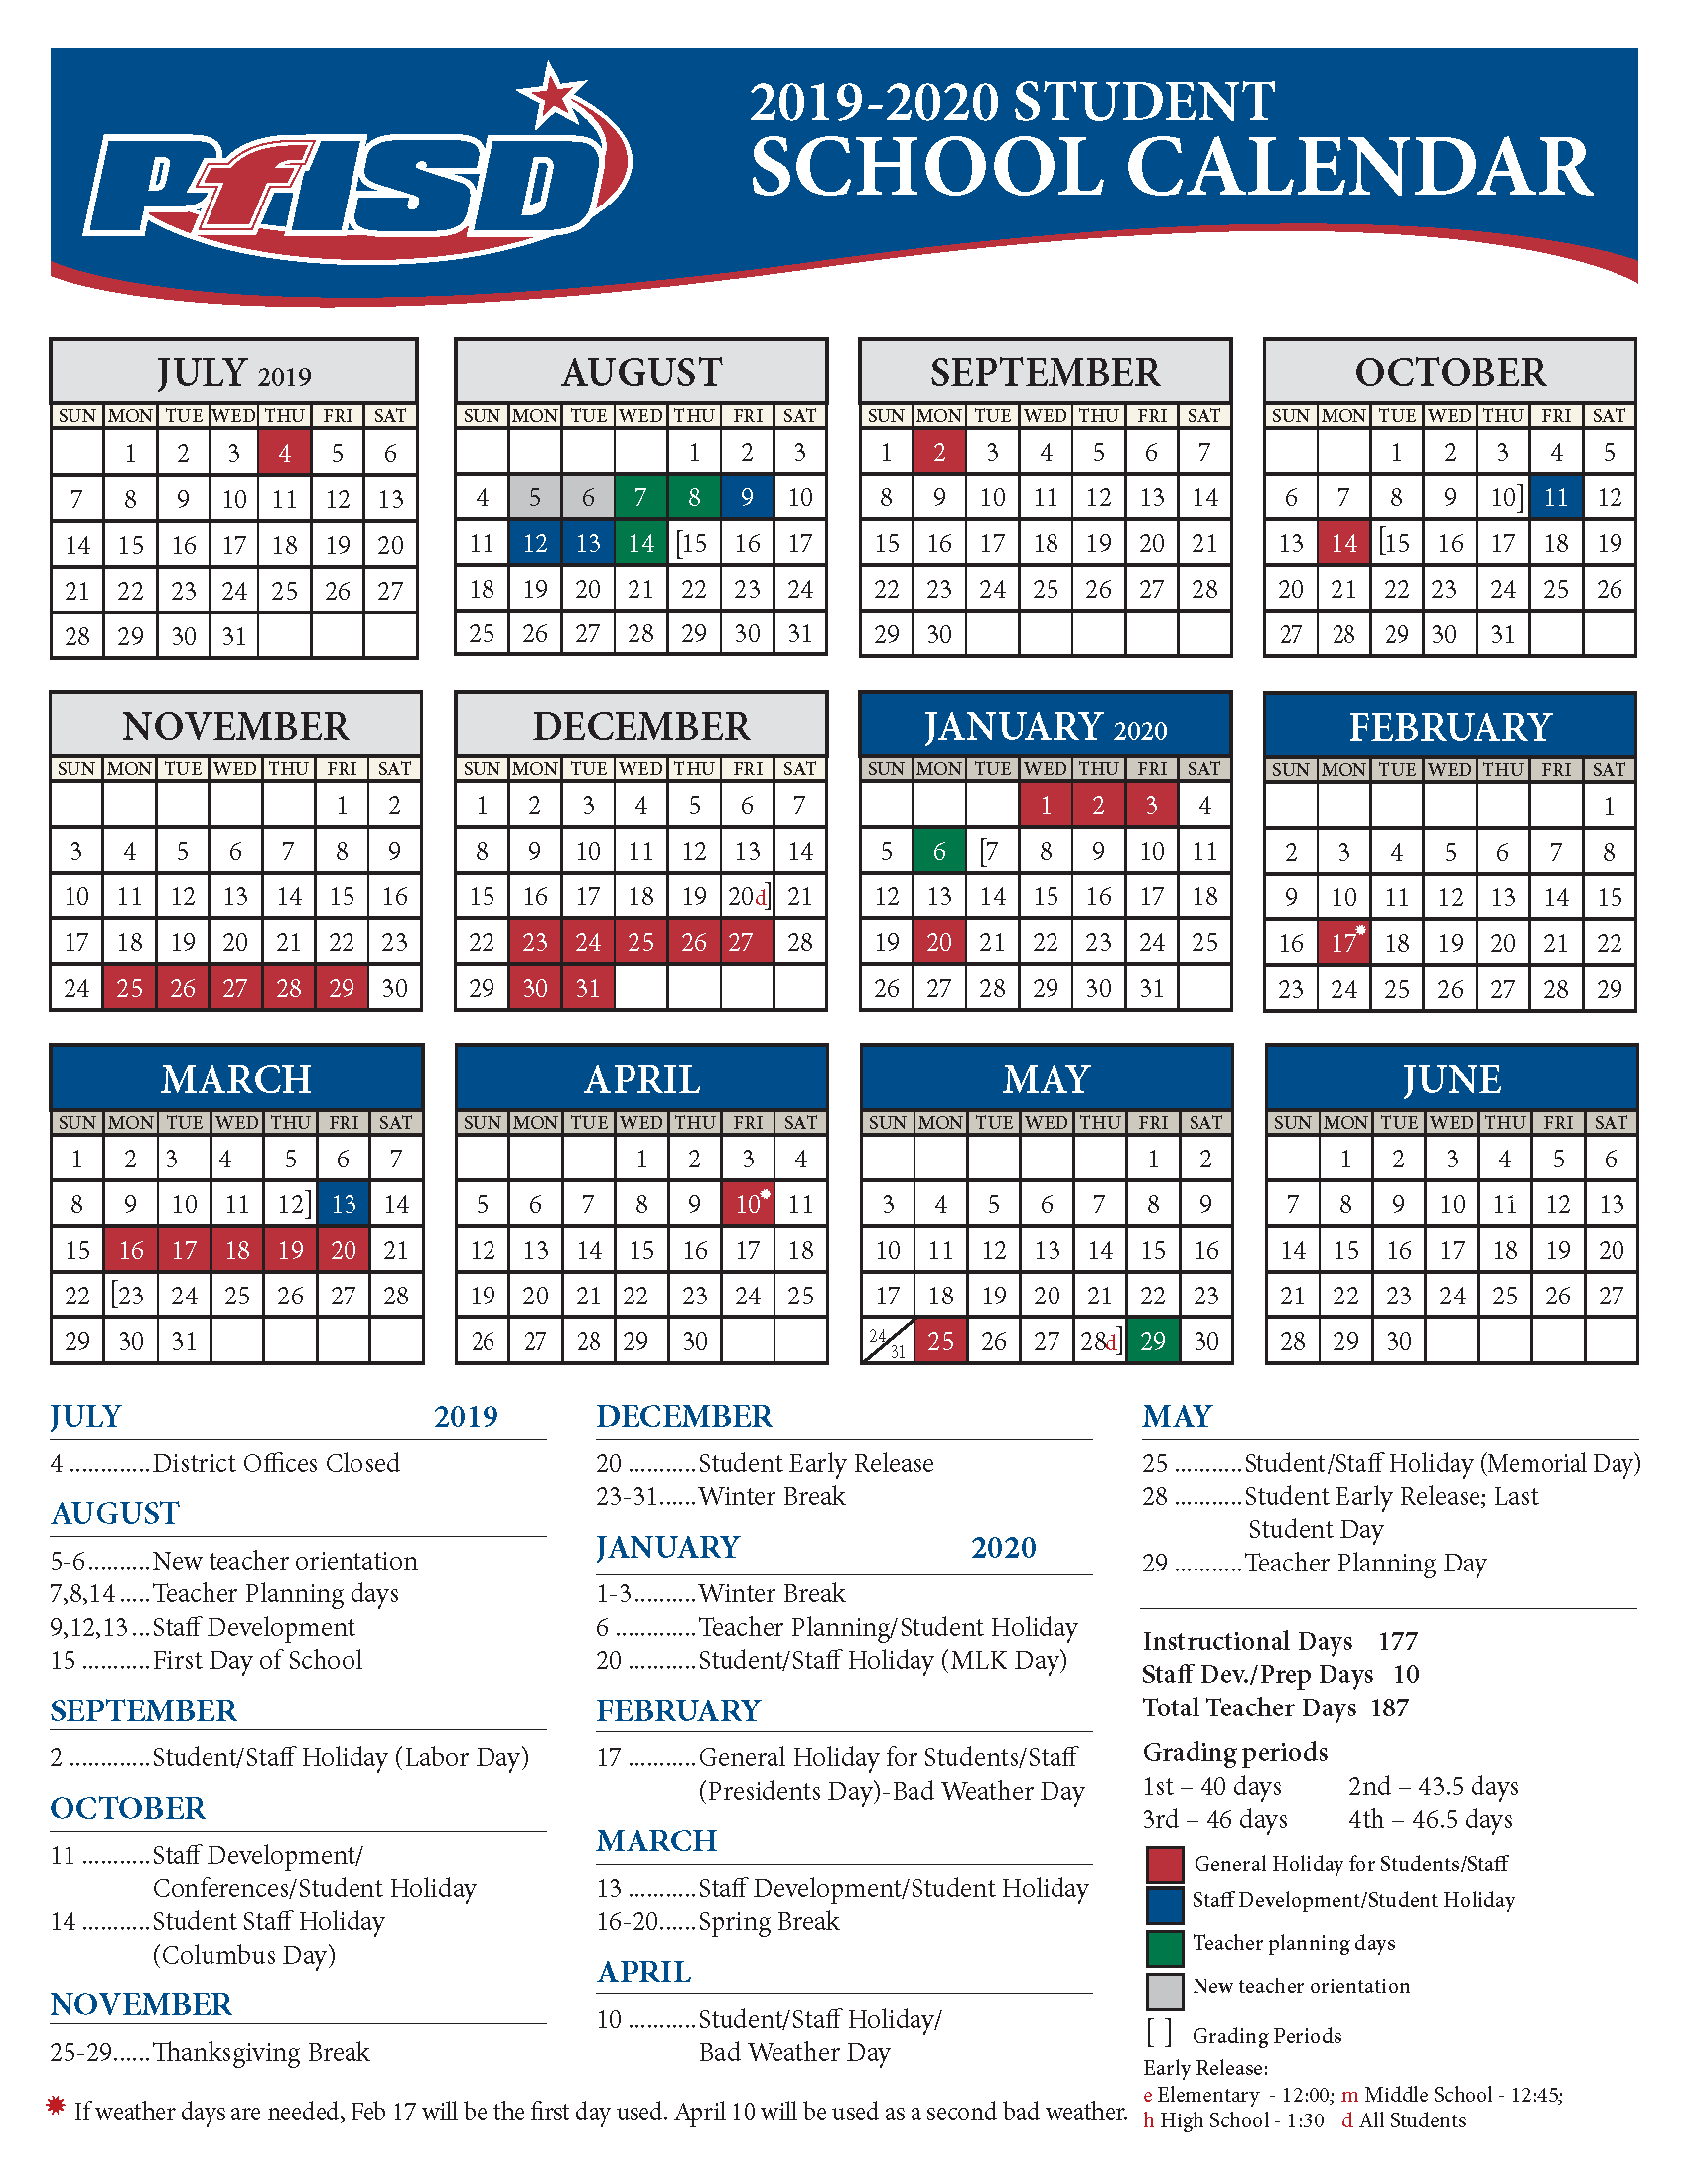 Hisd Calendar 2020 2016 School Year Calendar / 2019 2020 District Calendar